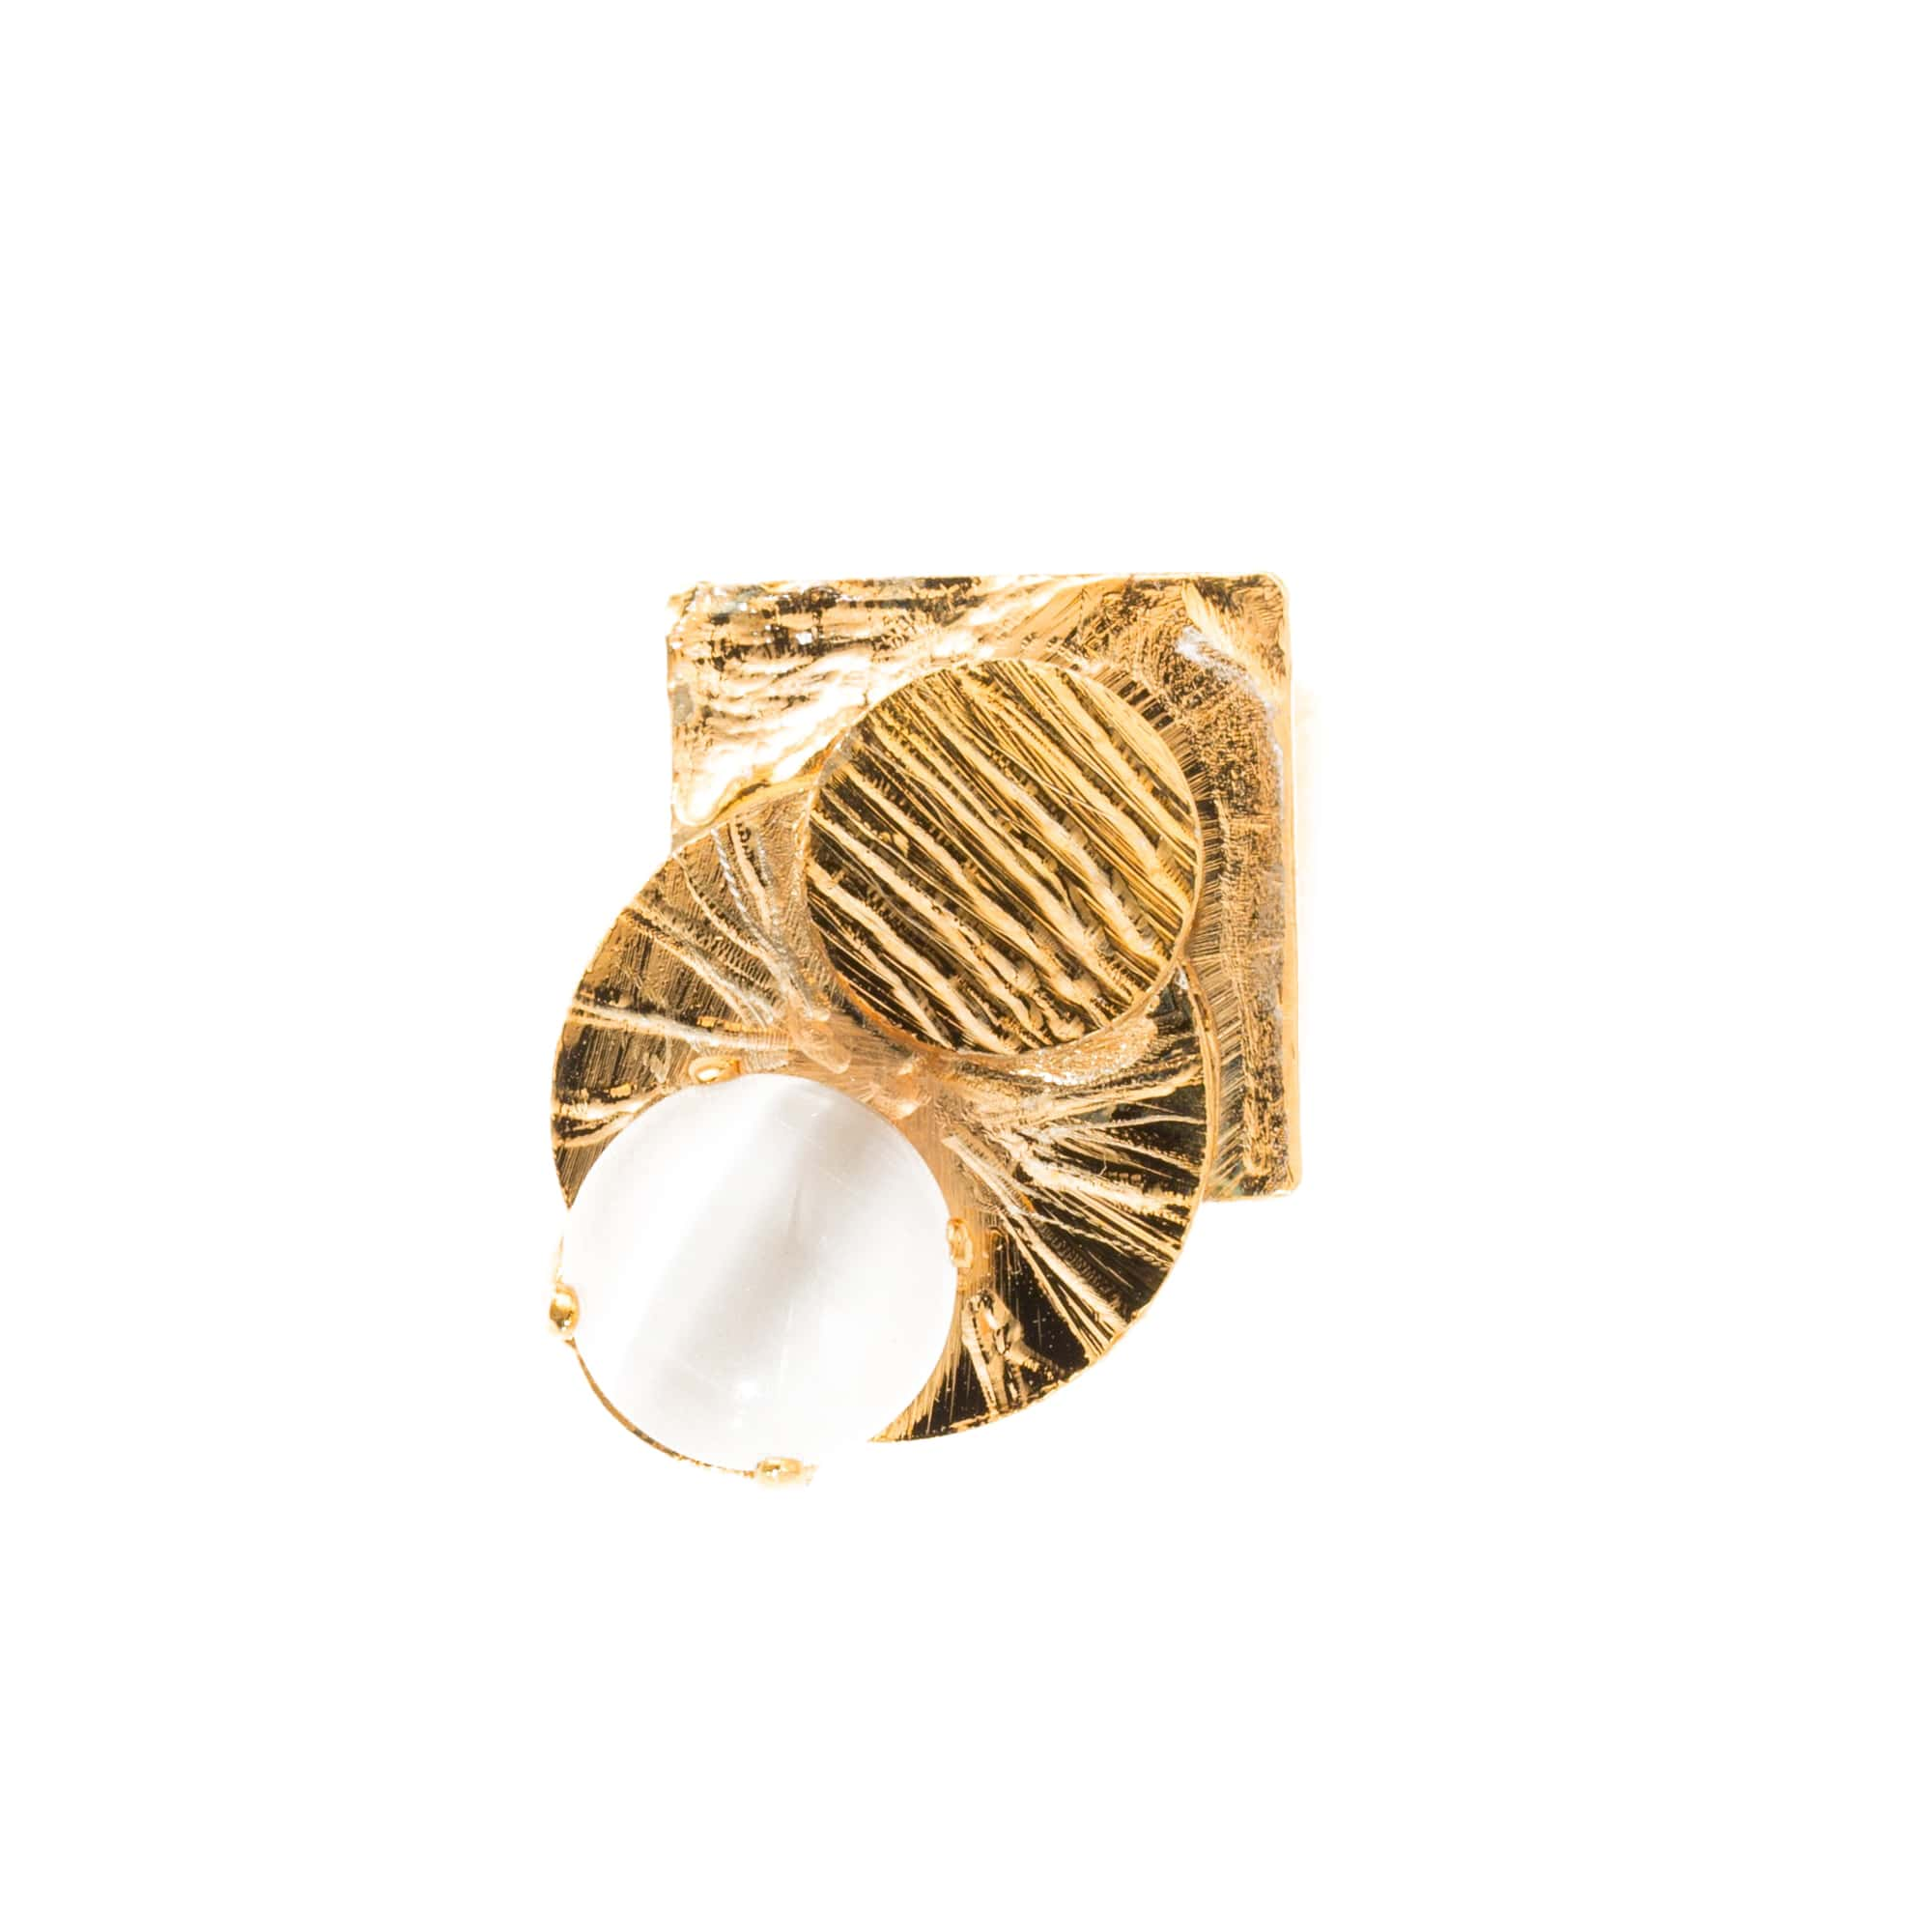 Mondrian Ring With White Crystal - Bona Tondinelli Bijoux